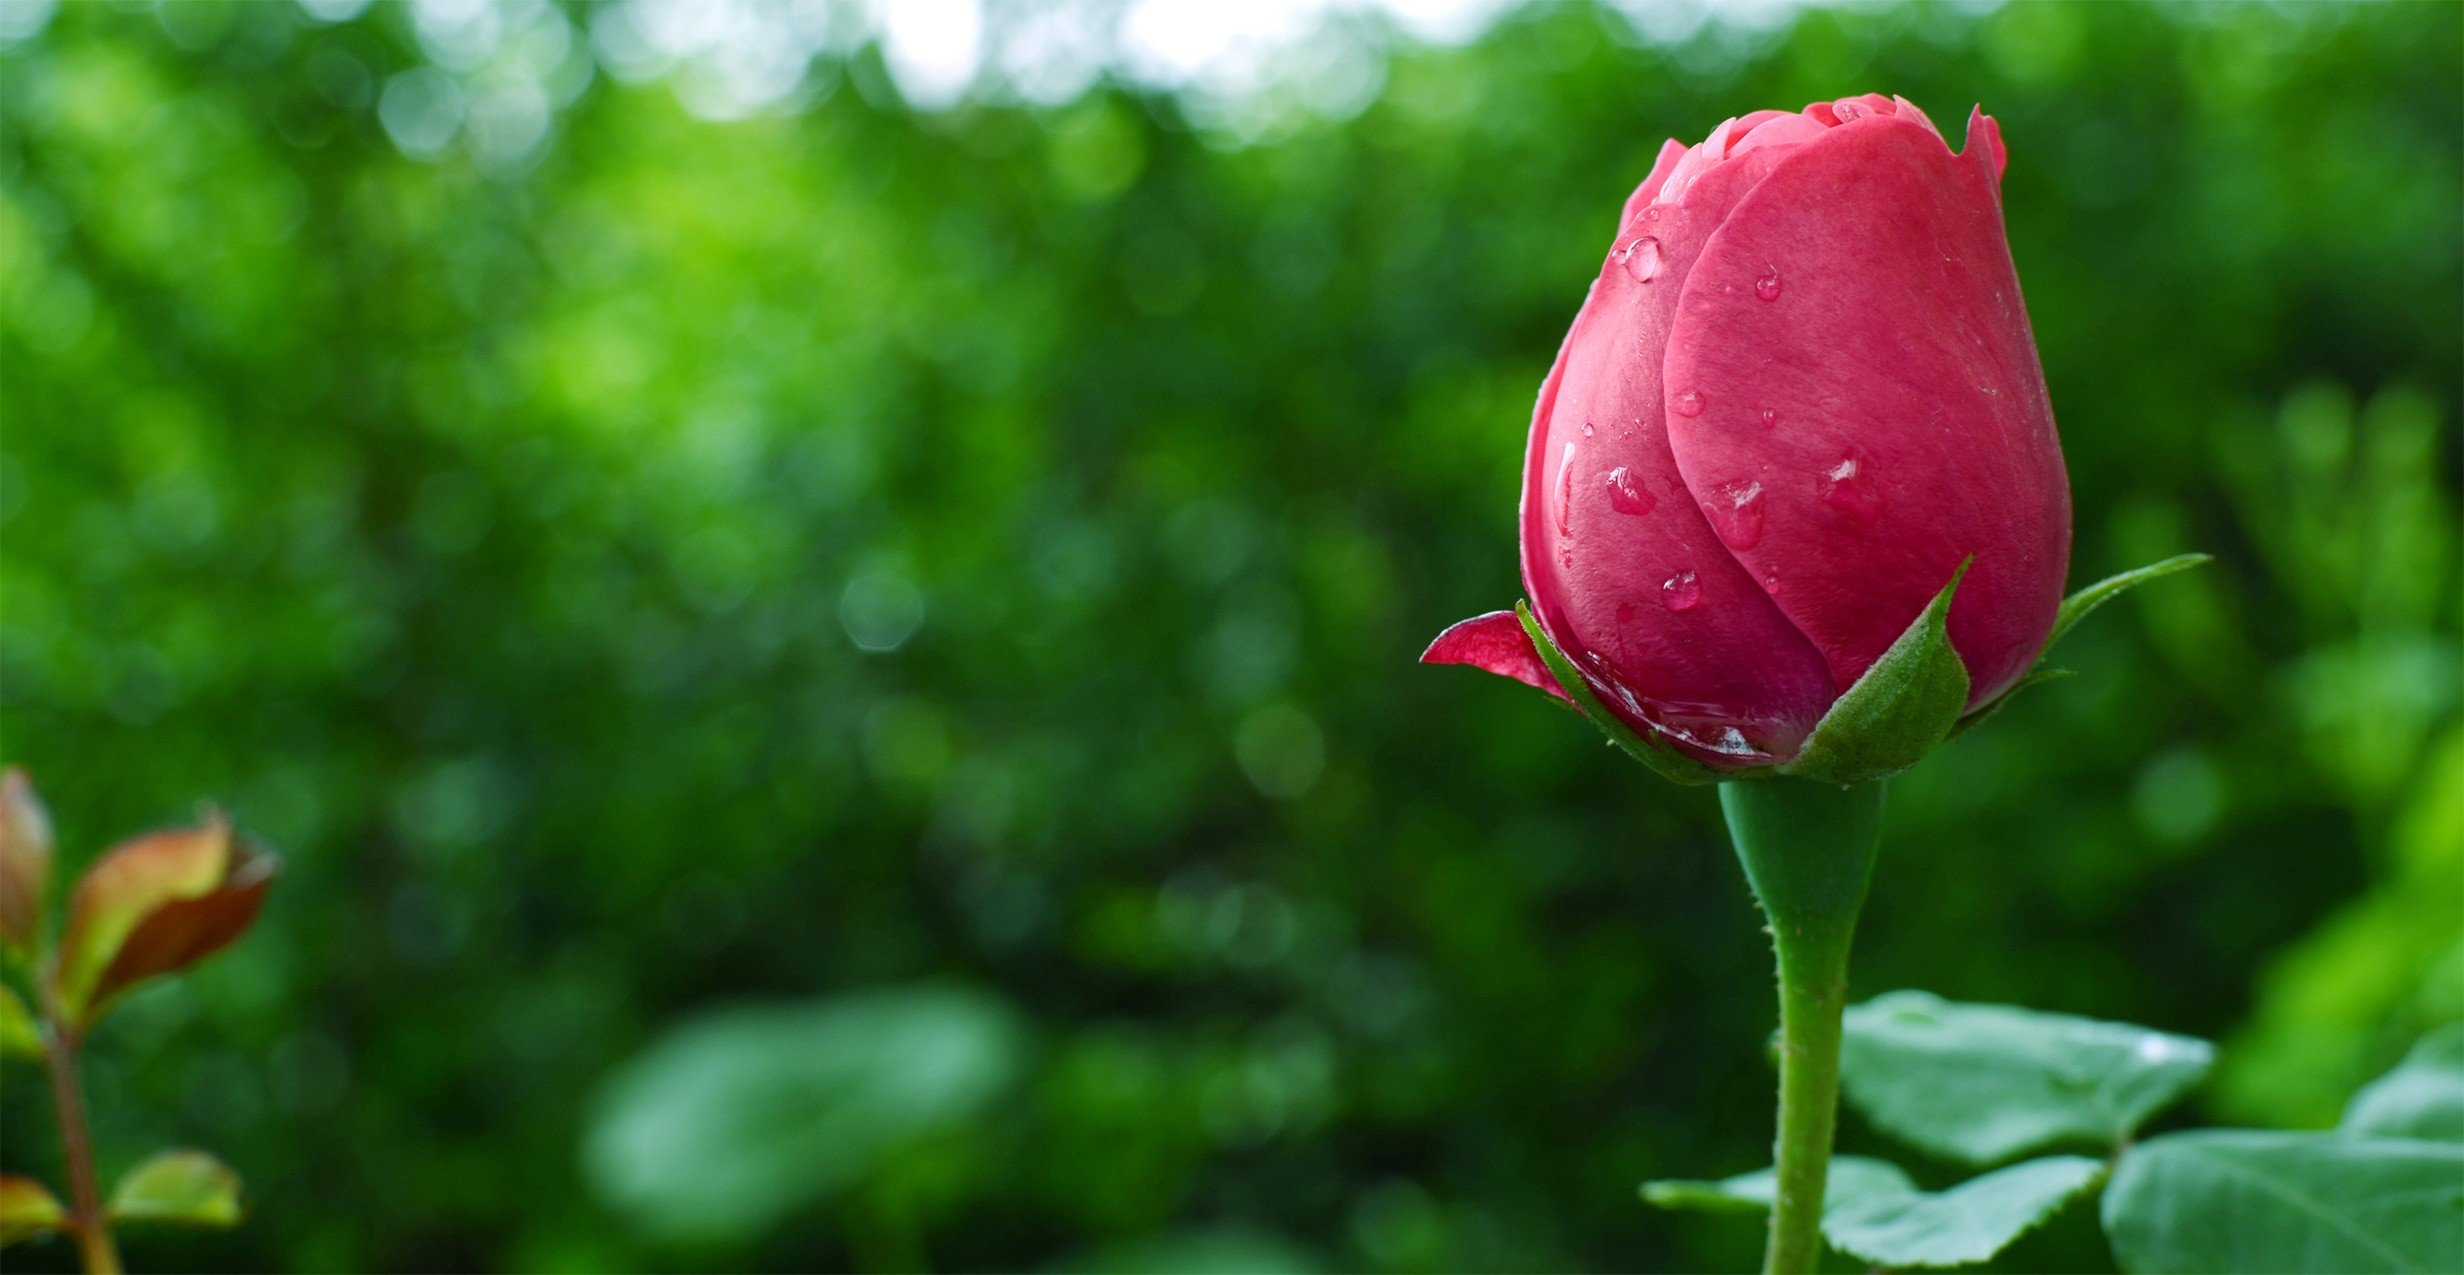 Rose plants garden water drops hd wallpapers desktop - Rose with water drops wallpaper ...